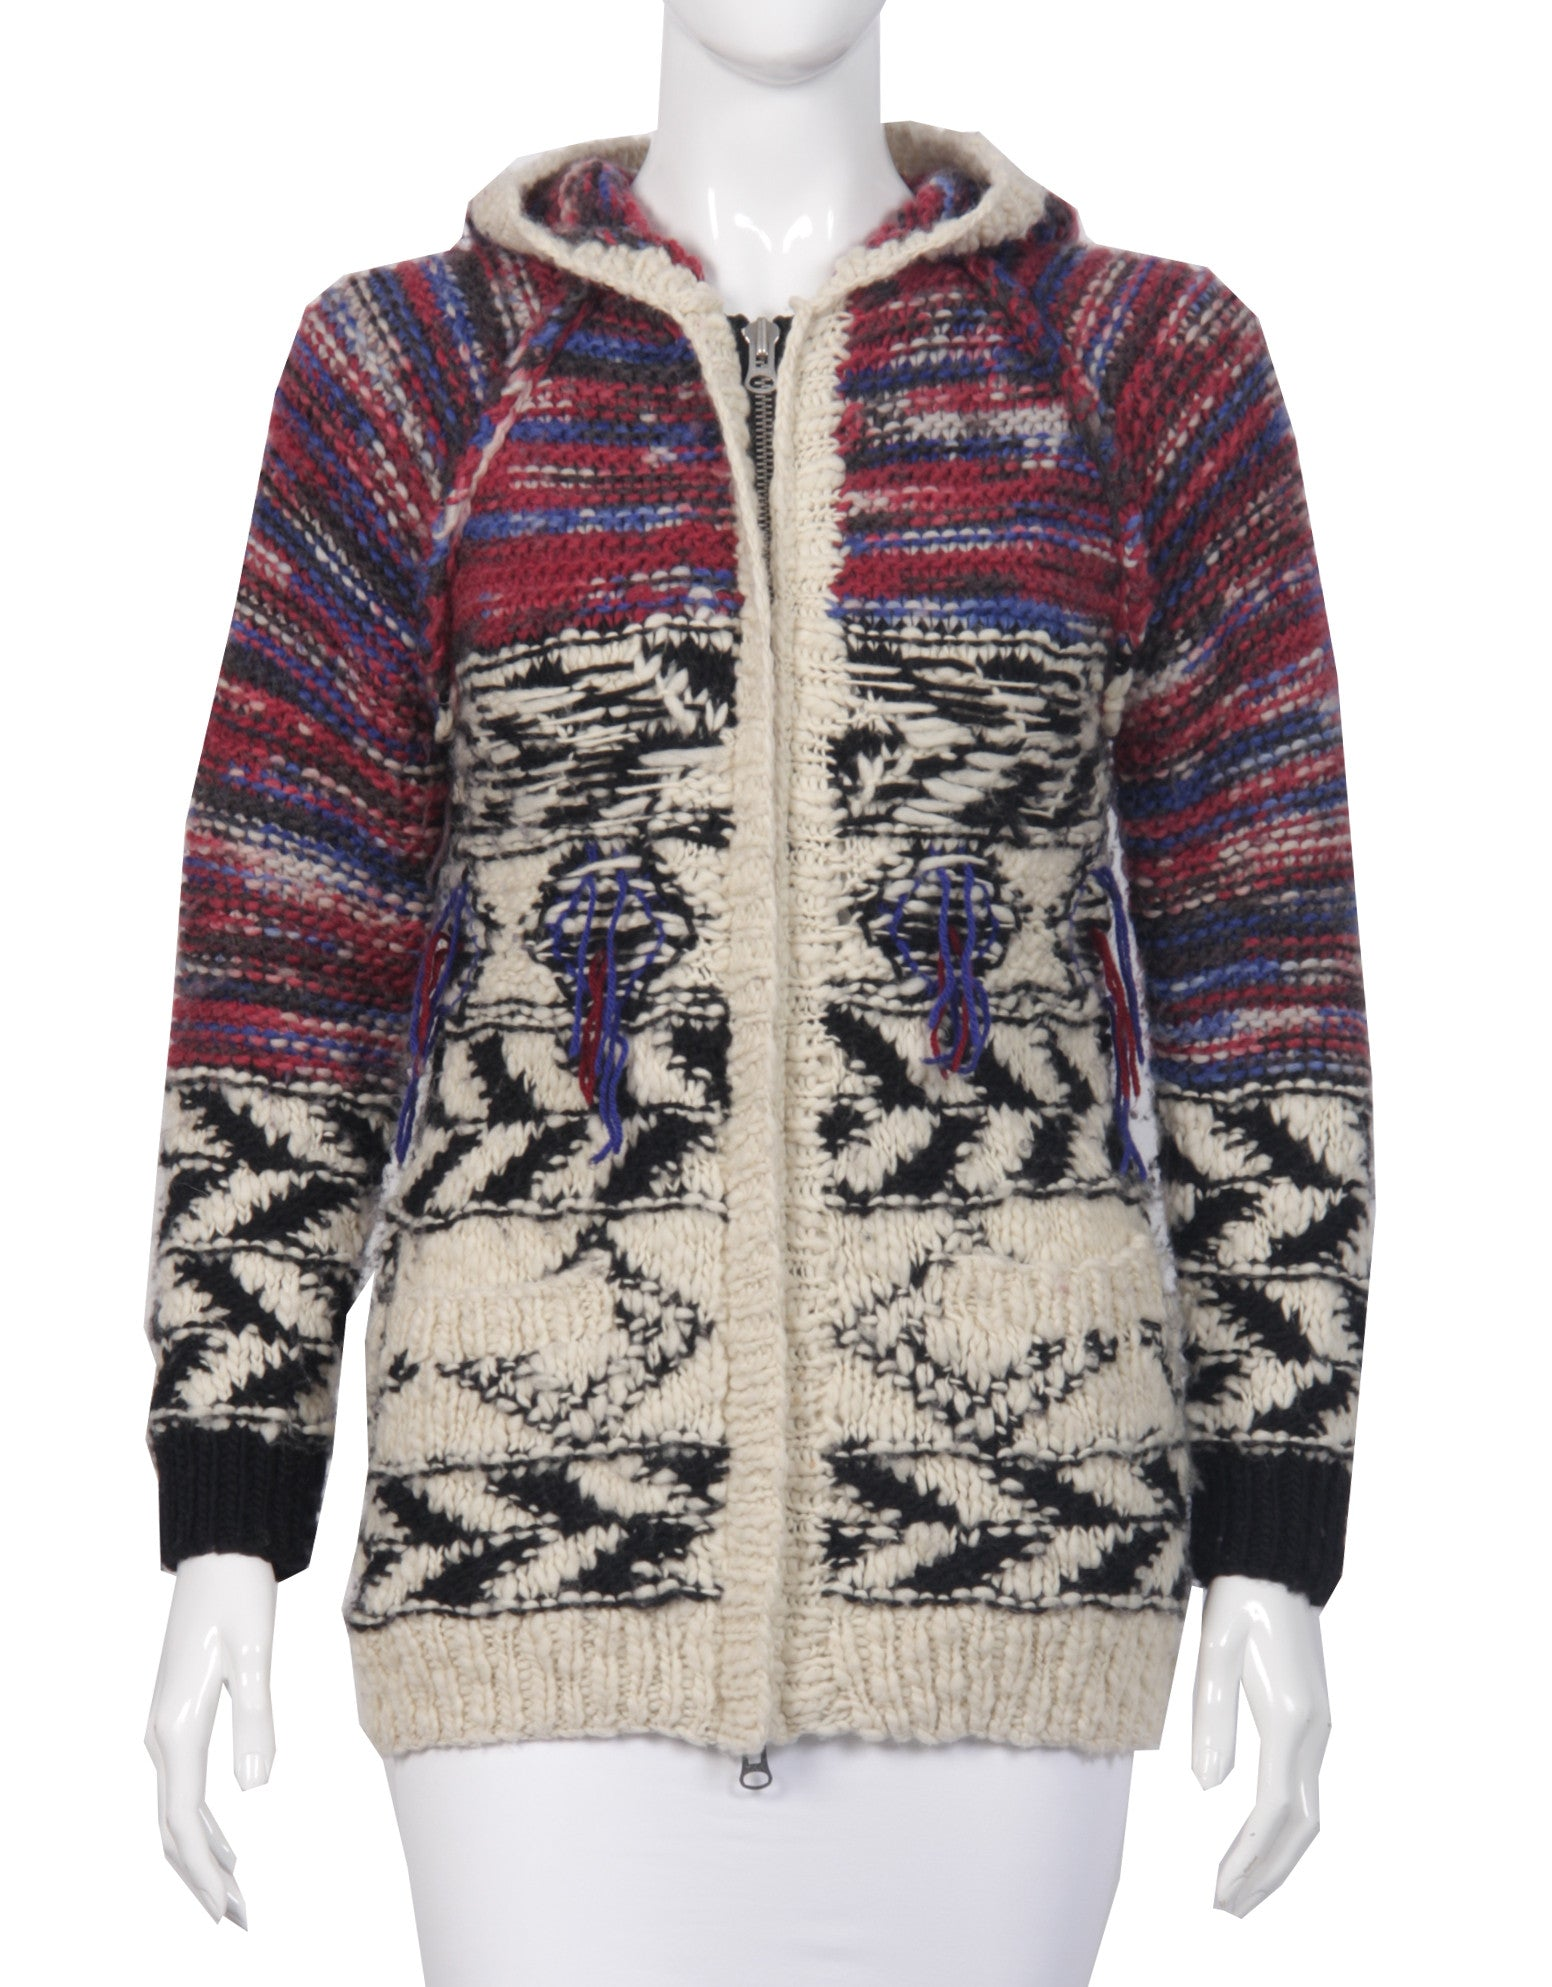 Isabel_Marant_pour_H_M_Cardigan_mehrfarbig_secondhand_seenbefore_front